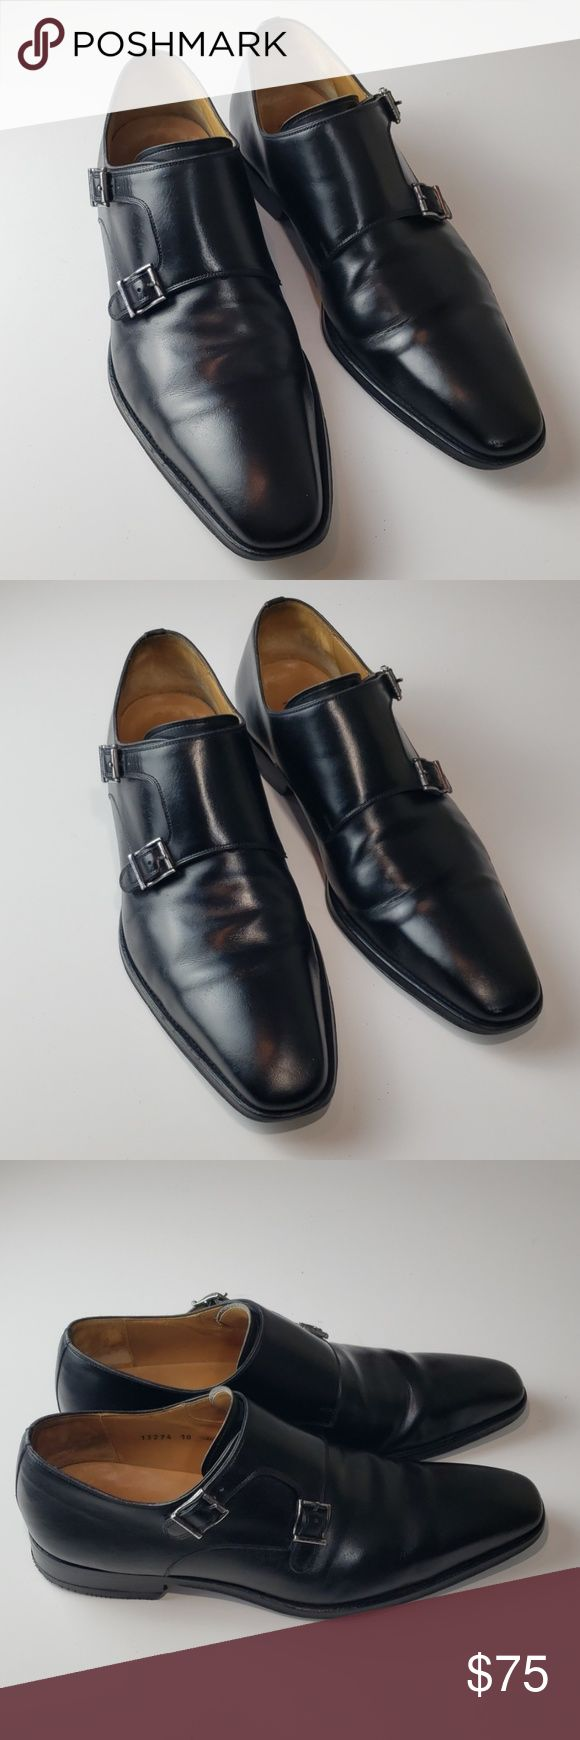 MAGNANNI DOUBLE MONK STRAP DERBY SHOES Whether you buy these from Nordstrom'...